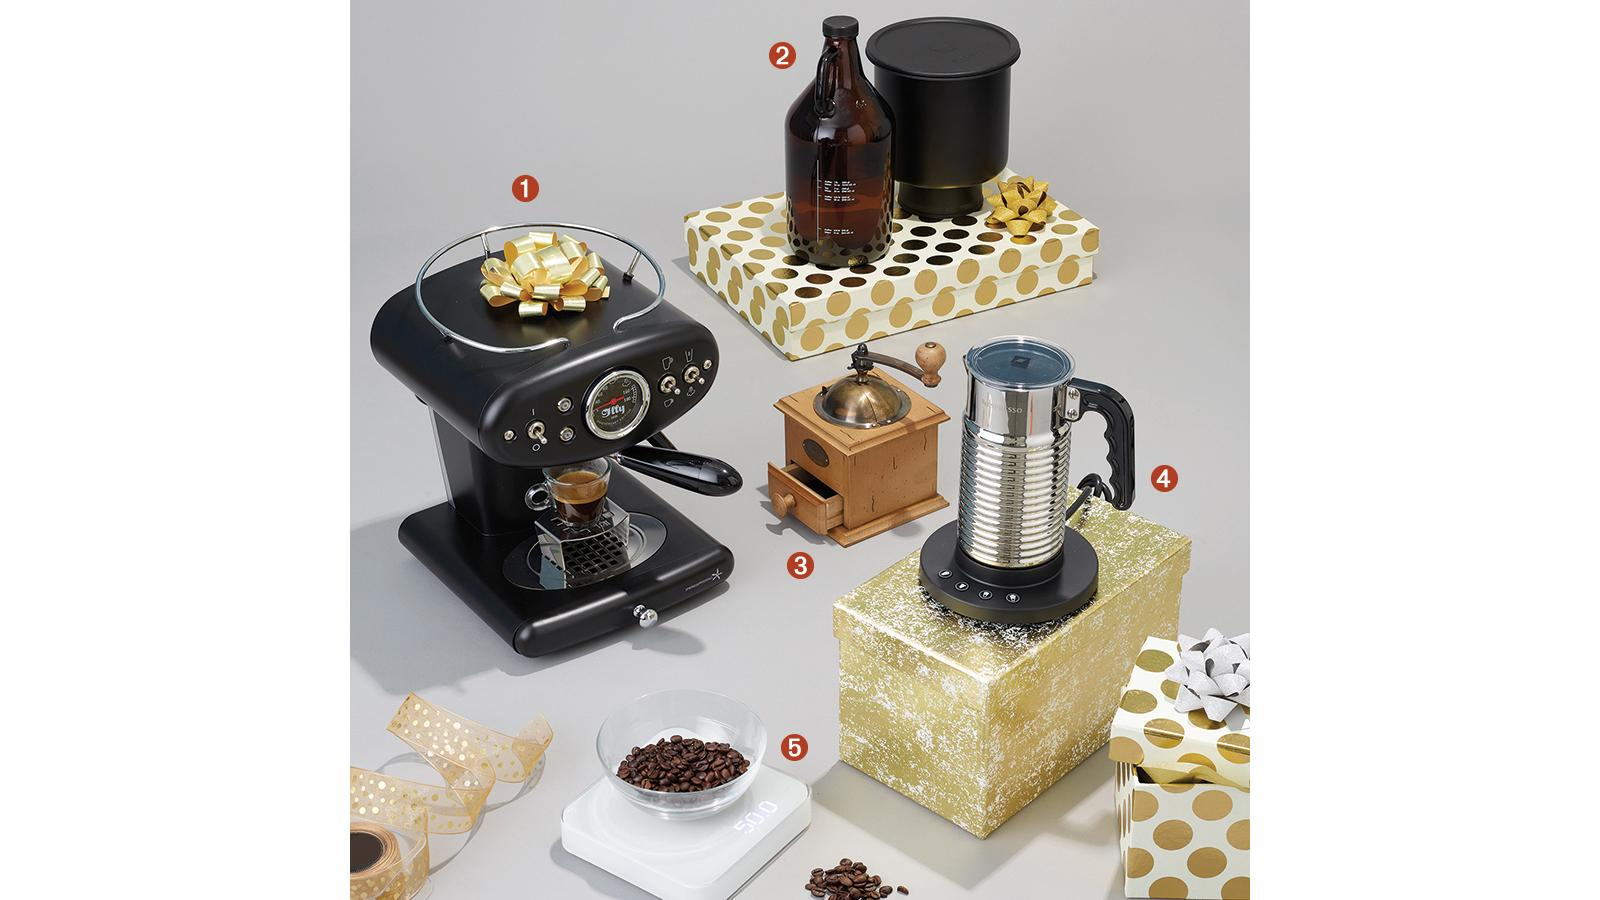 Clockwise from the left: Illy's X1 Iperespresso Anniversary 1935 Machine wwith a bow on top, Espro's Cold Brew CB1 Coffee Kit atop a gold polka dot box, Peugeot's antique coffee mill, Nespresso's Aeroccino4 milk frother standing on a gold marbled box and Acaia's Pearl coffee scale.